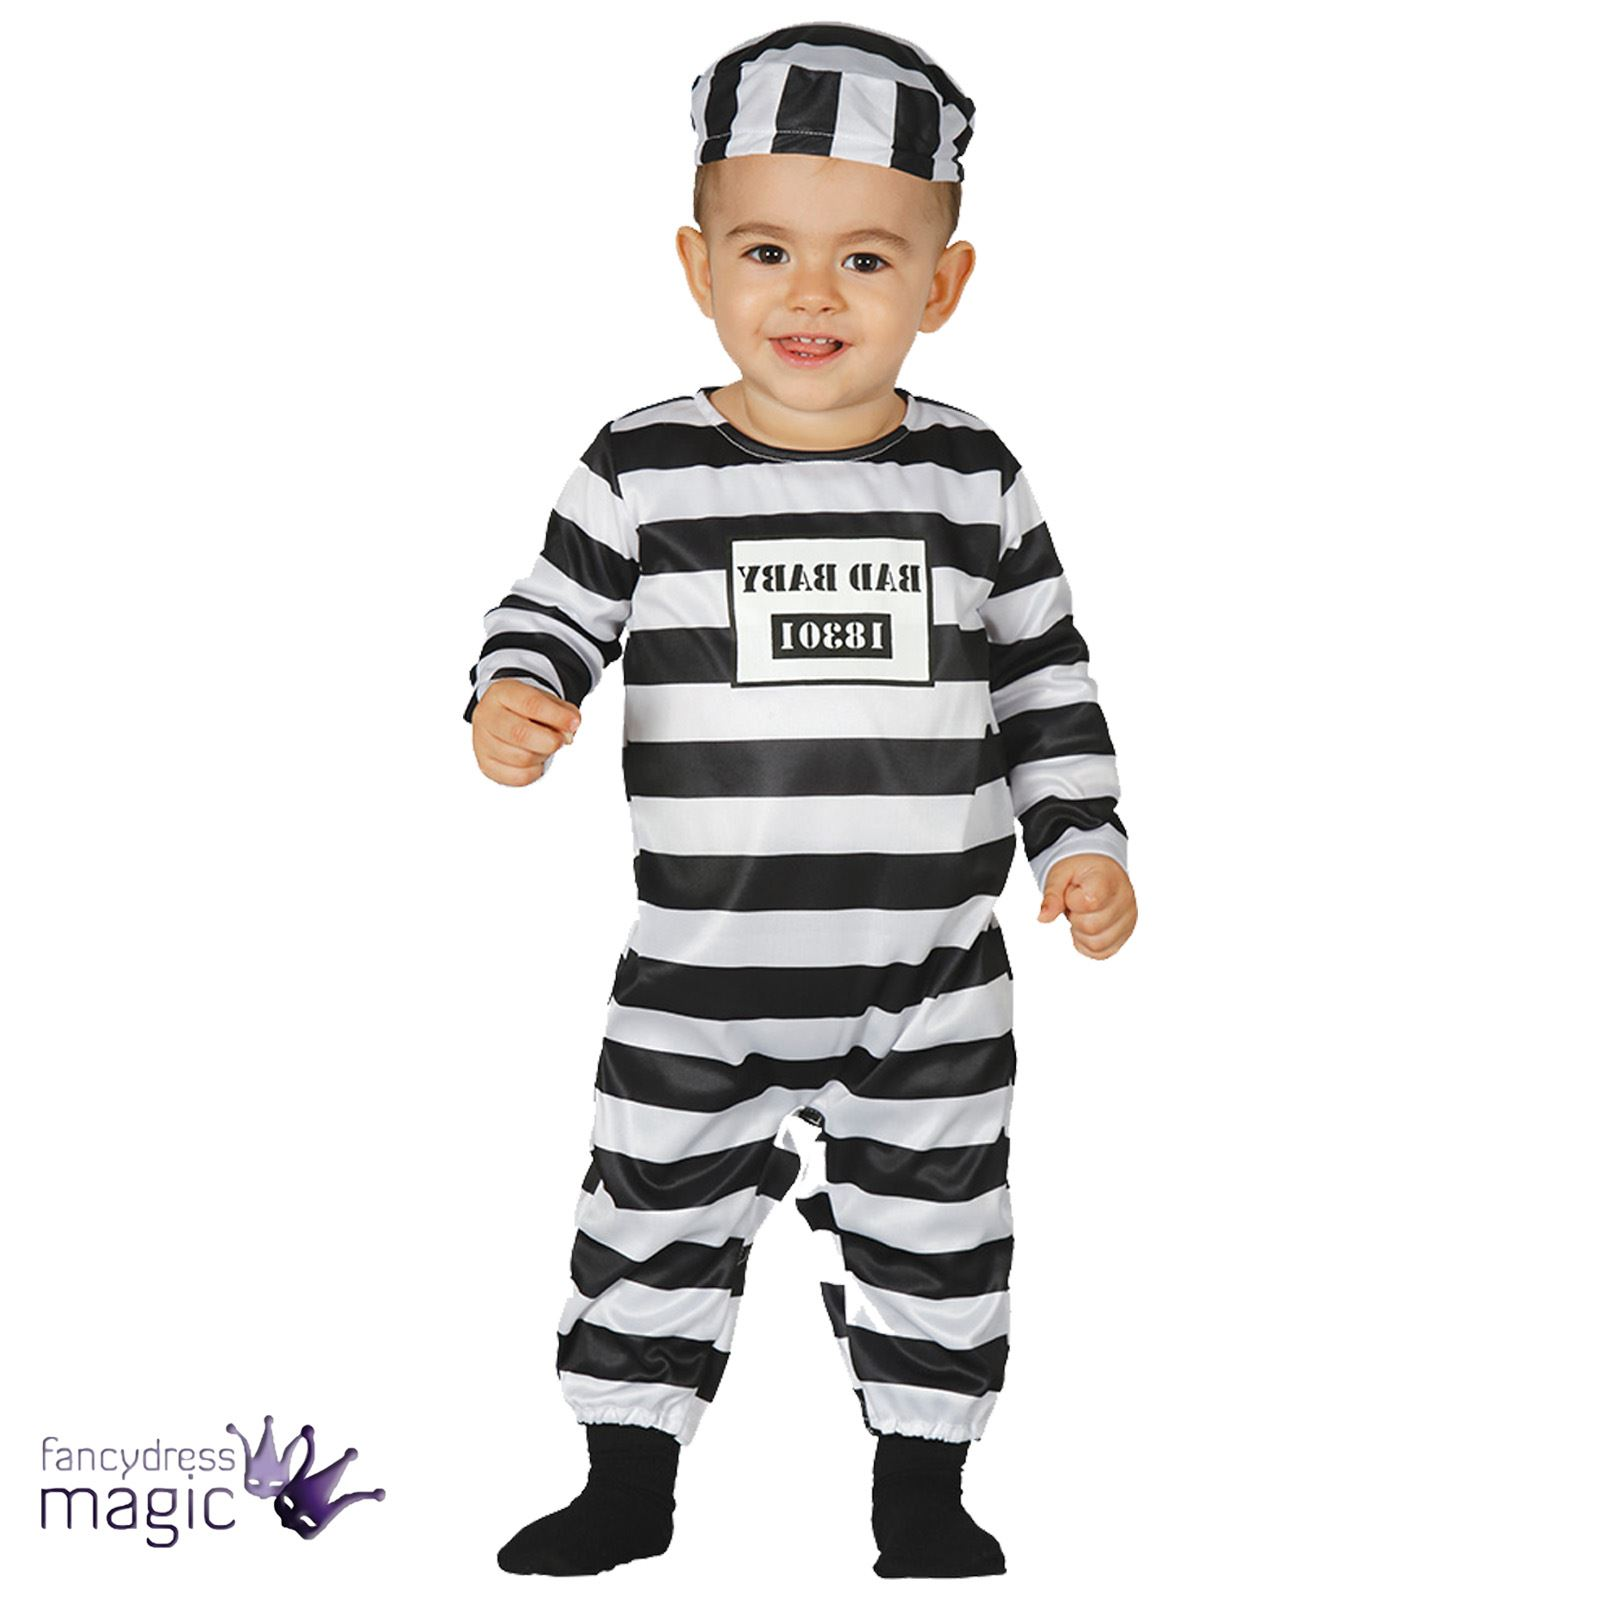 Baby Infant Childs Halloween Prisoner Fancy Dress Costume Outfit Hat